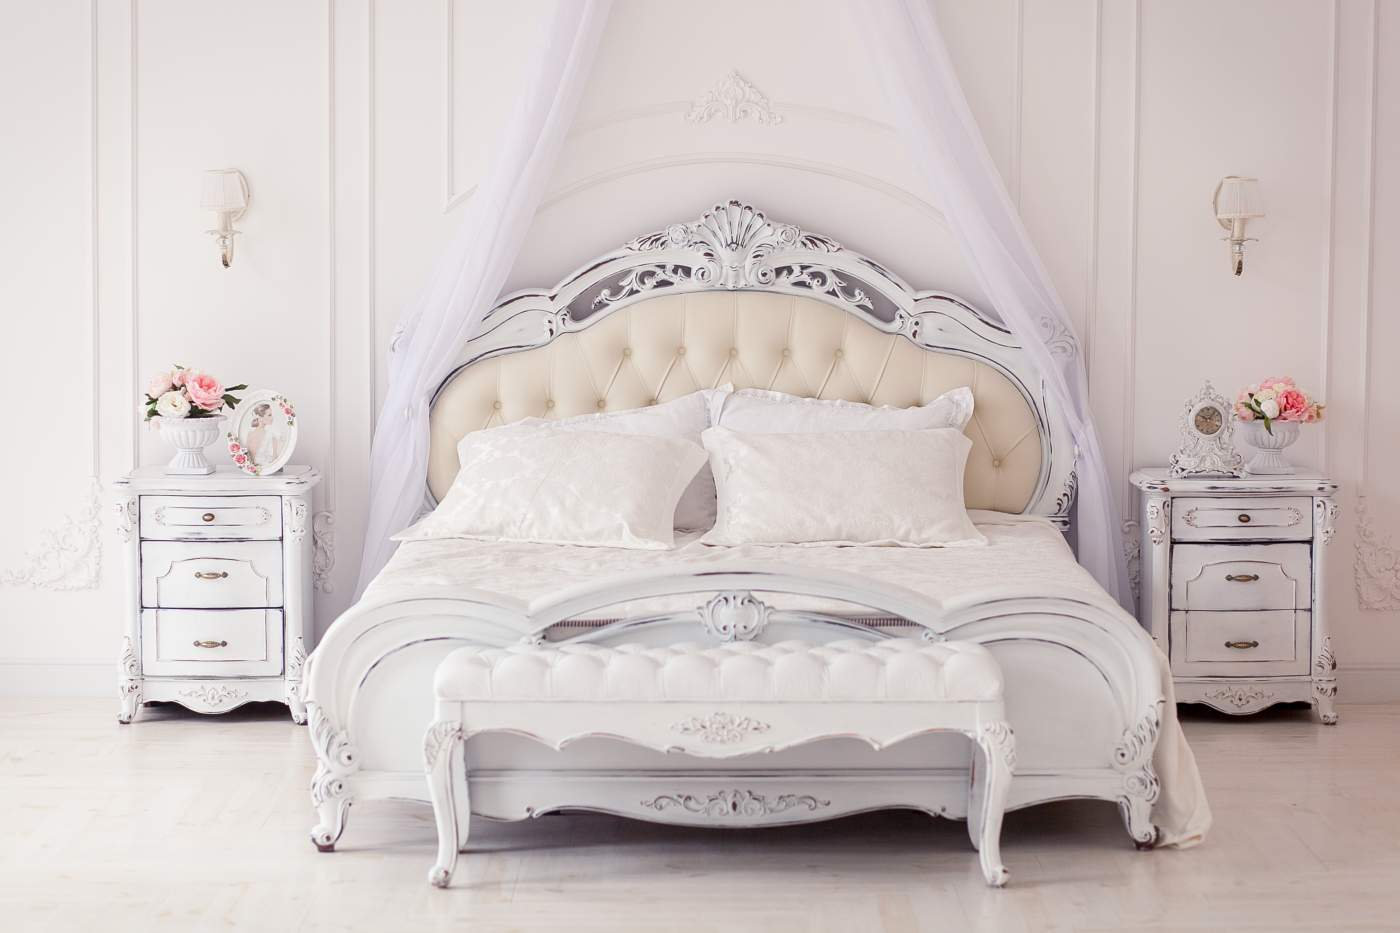 Bright, cozy stylish interior bedroom beautiful rich antique furniture four-poster bed